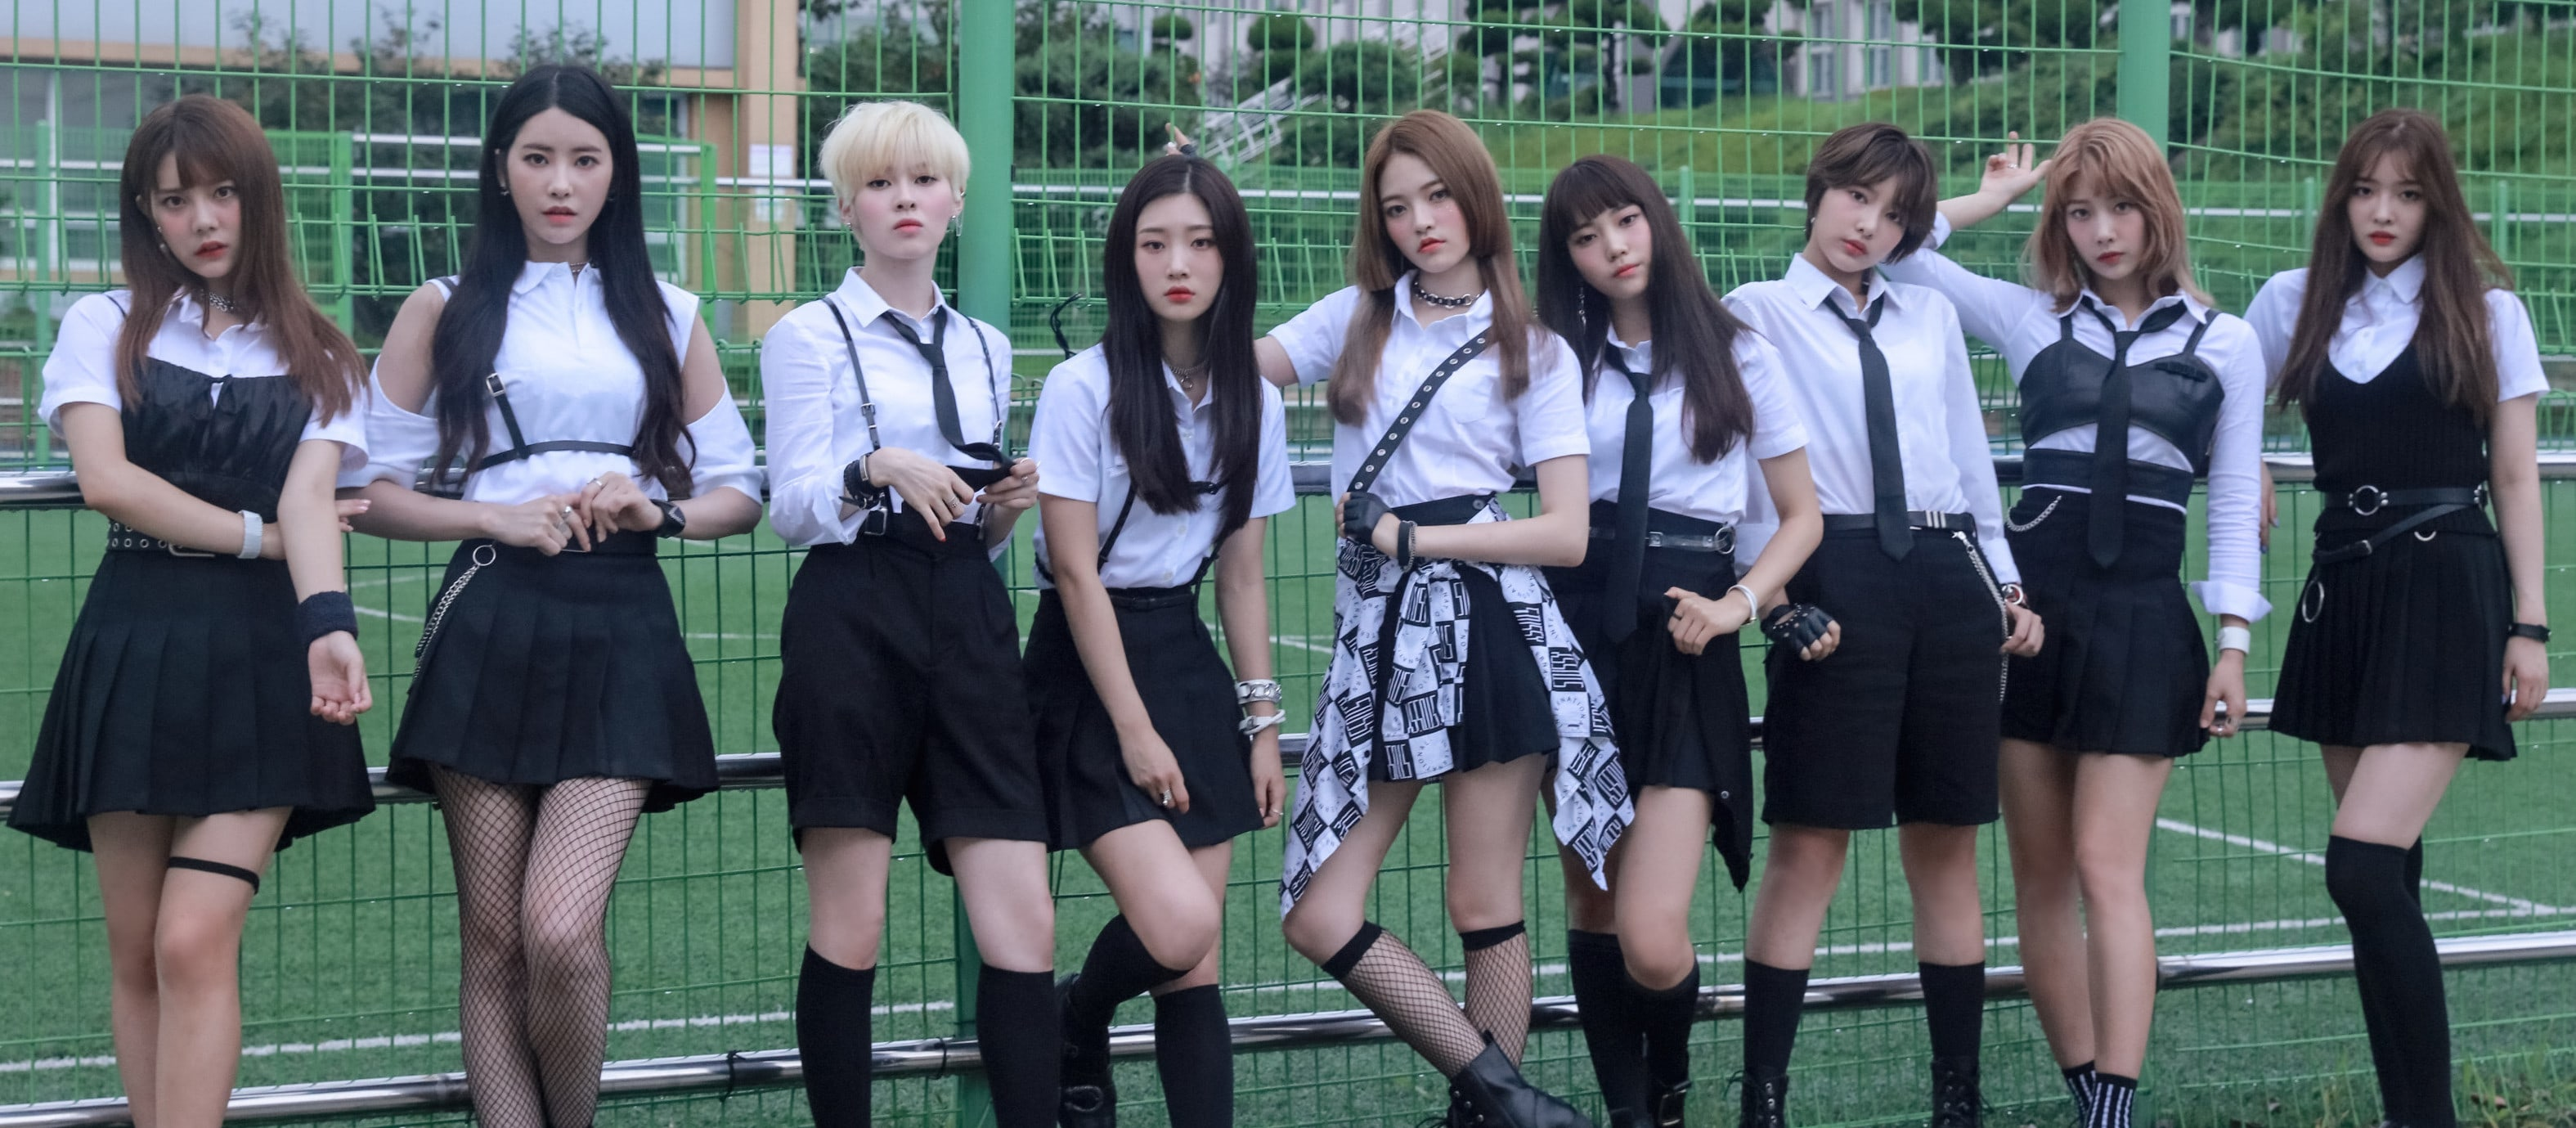 DIA To Hold Live Broadcasts Everyday For A Year